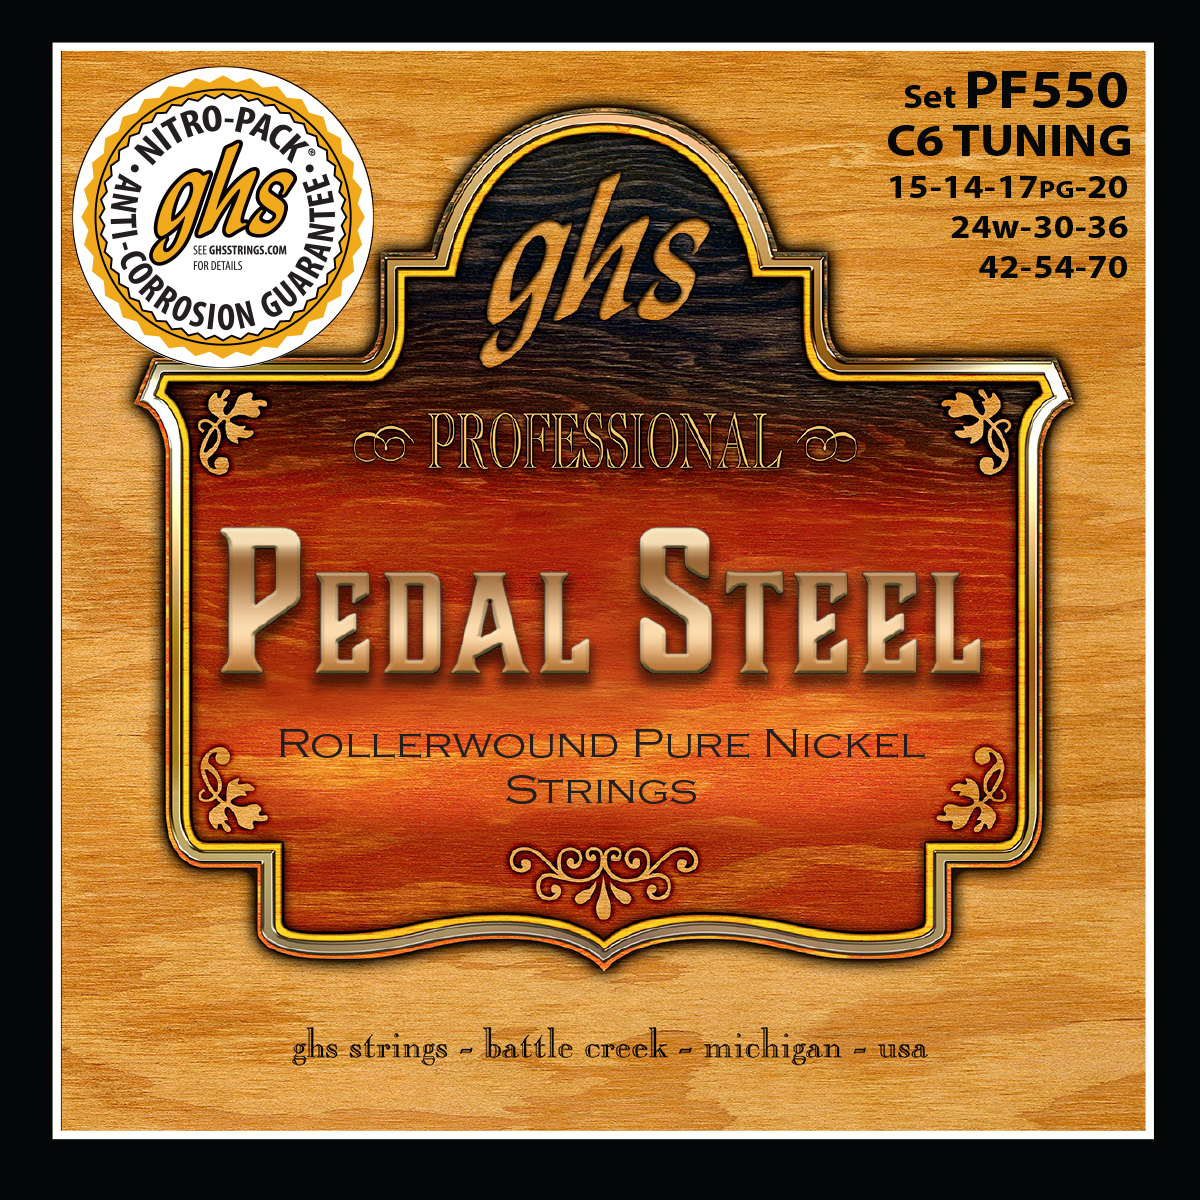 GHS Strings Steel Pedal C6th Tuning (PF550)